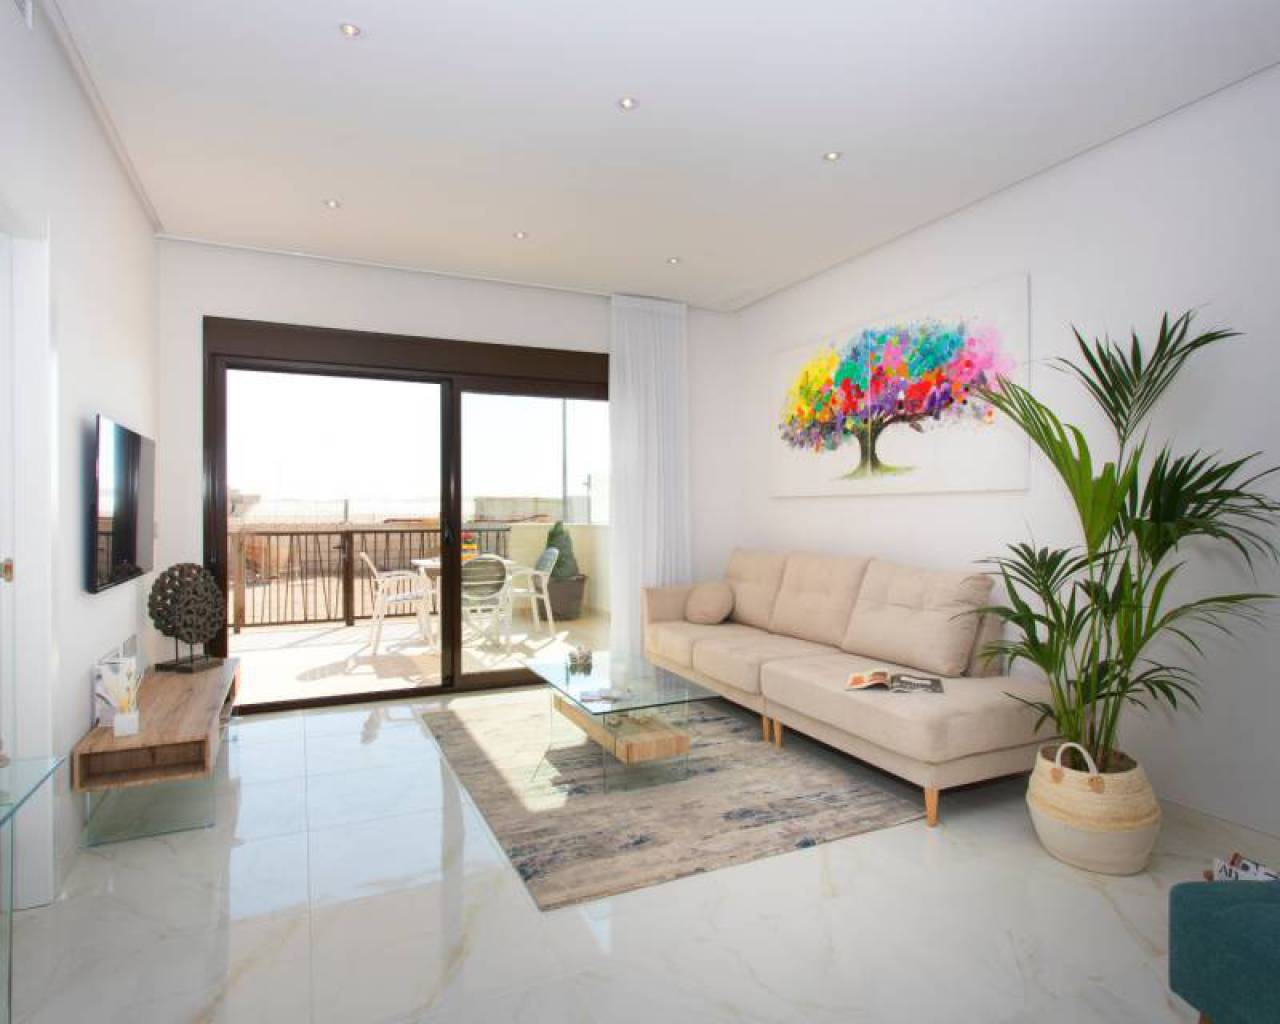 New Build - Apartment - Dolores de Pacheco